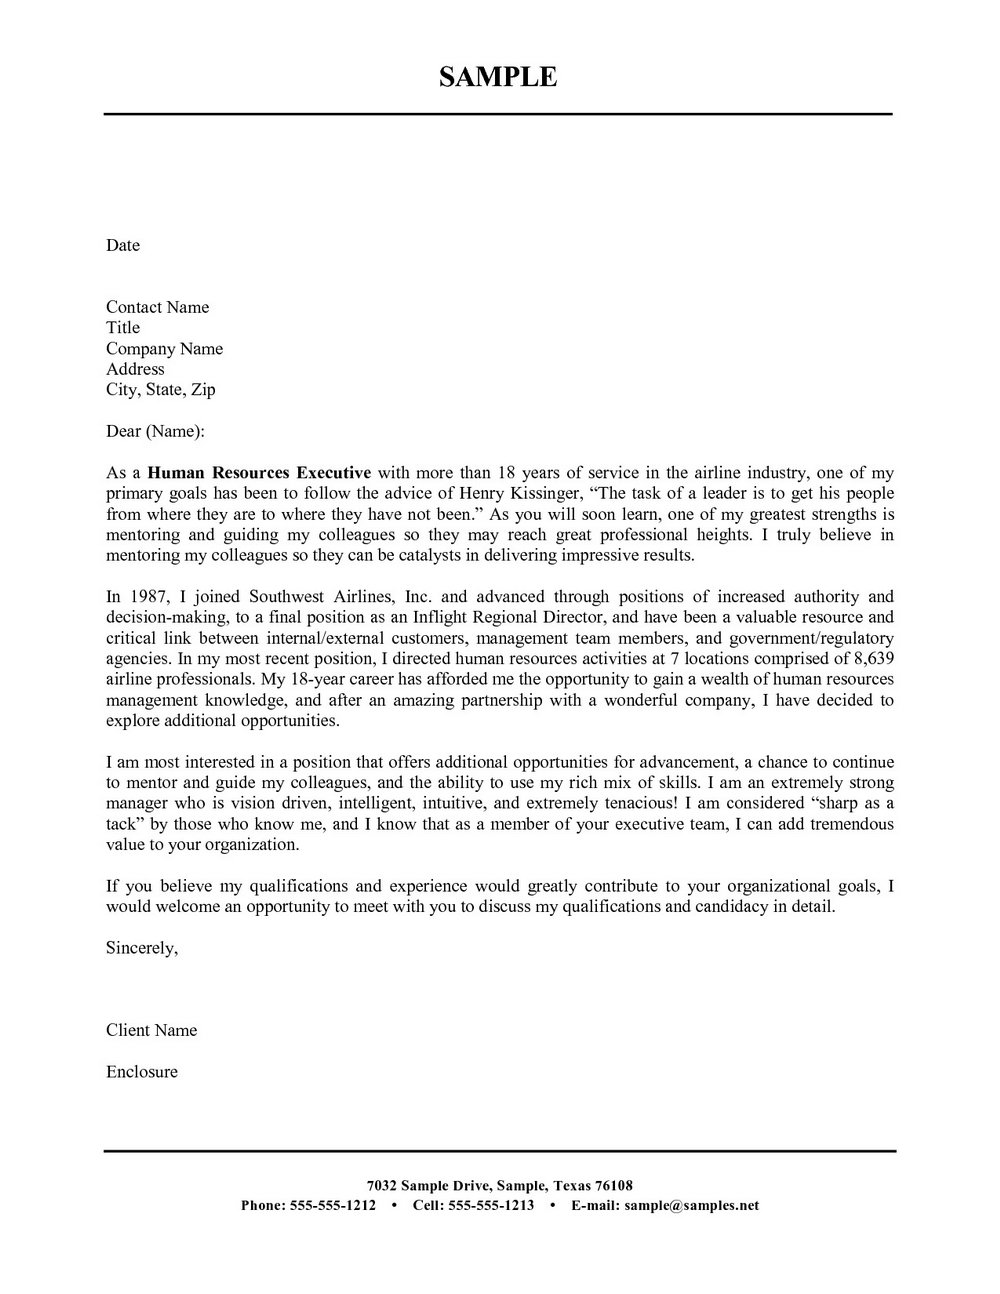 Free Cover Letter Templates Printable